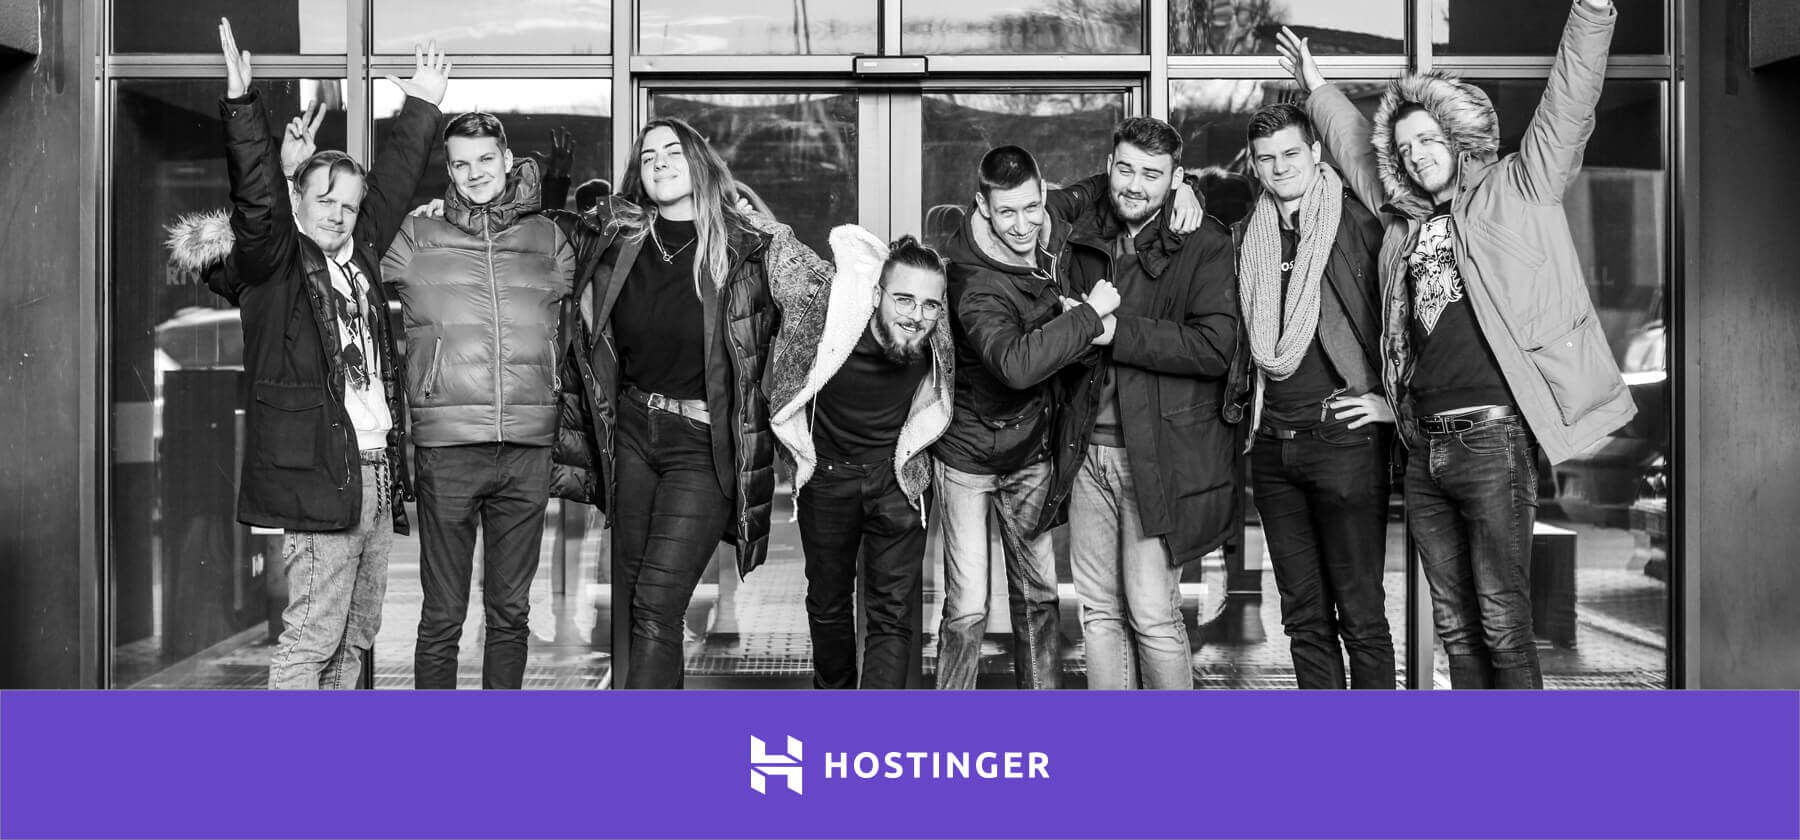 From 2 hours to 2 minutes: How Hostinger accelerated customer support with Intercom